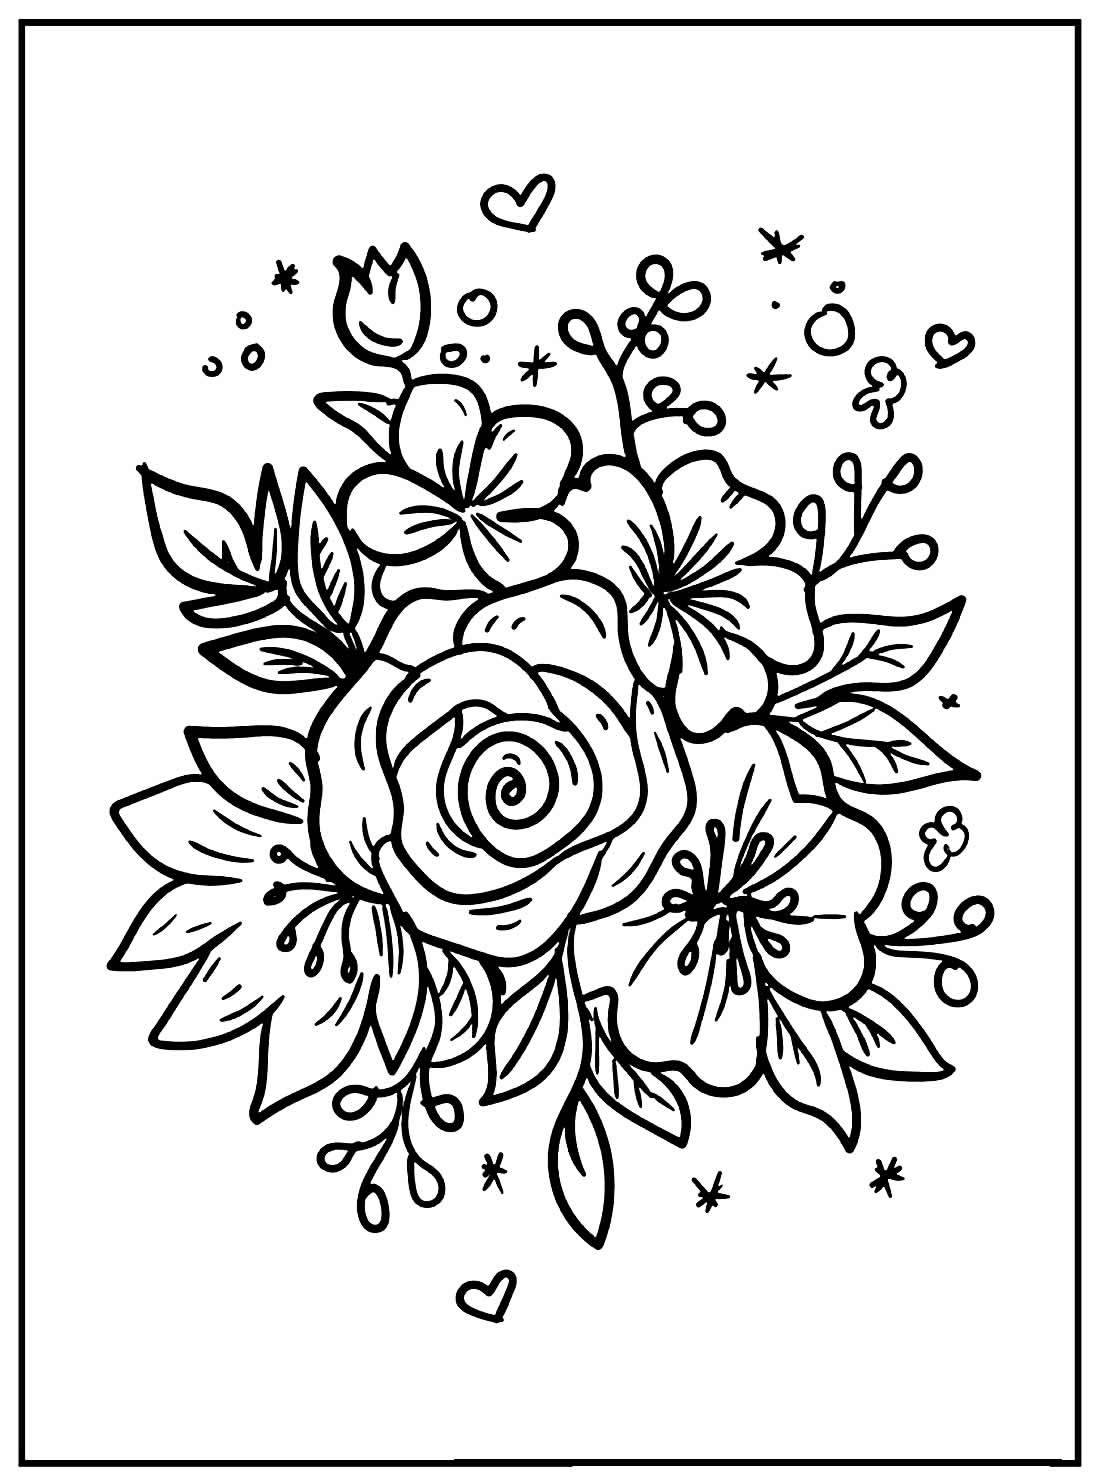 Flower drawings to color